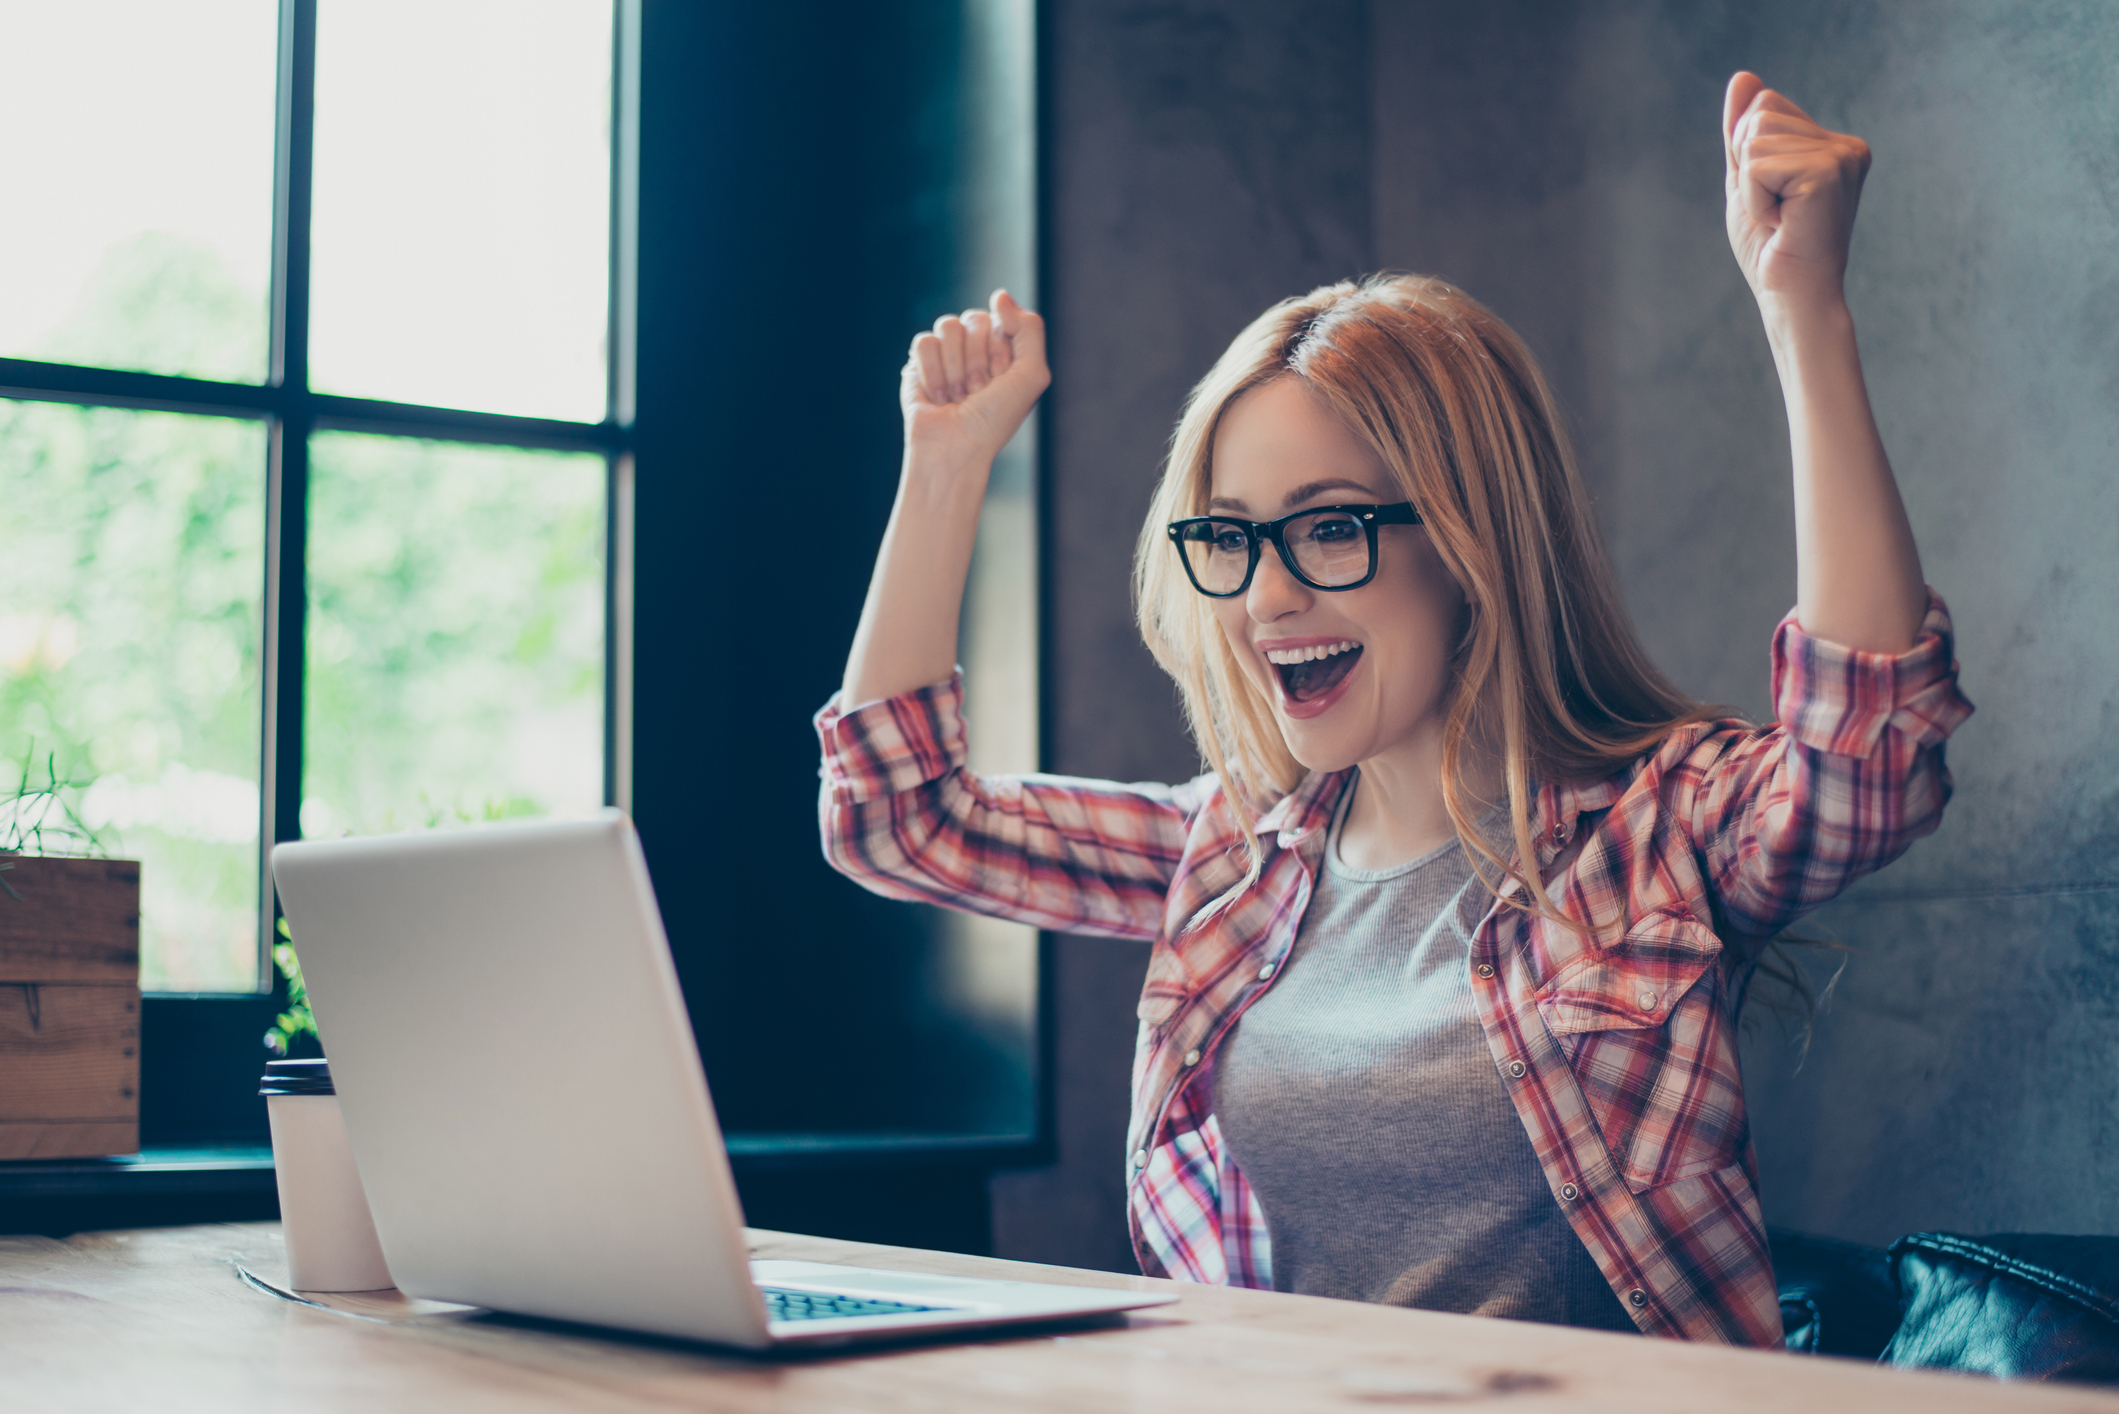 Excited Young Woman Raising Hands In The Air Looking At Her Laptop